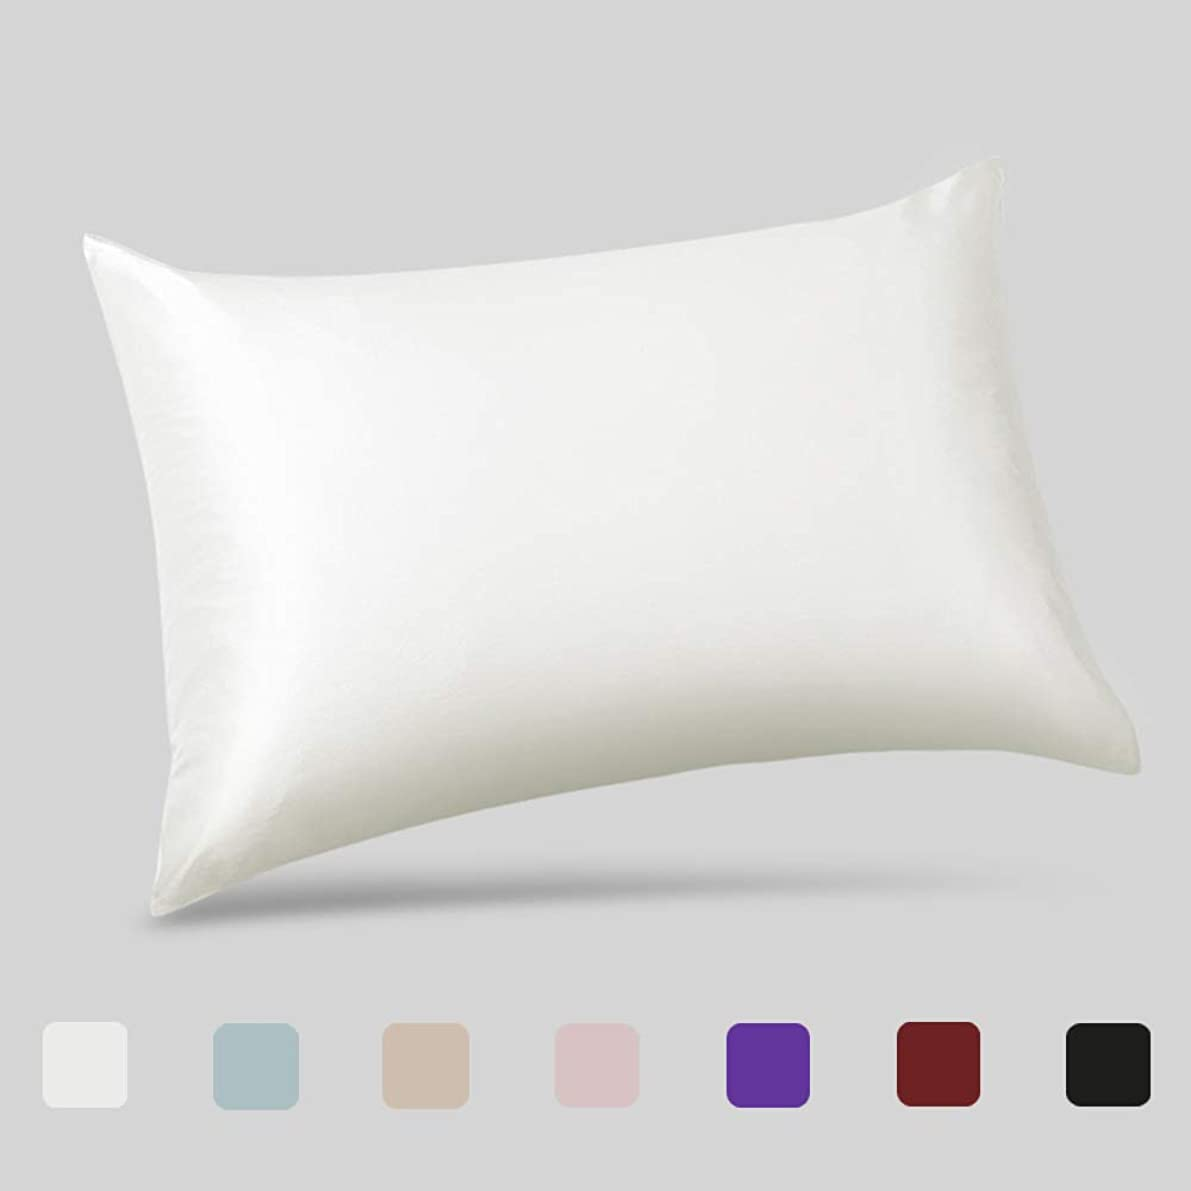 ALASKA BEAR - Natural Silk Pillowcase, Hypoallergenic, 19 momme, 600 thread count 100 percent Mulberry Silk, Queen Size with hidden zipper (1, Ivory(Natural Undyed White)) andzvwh16